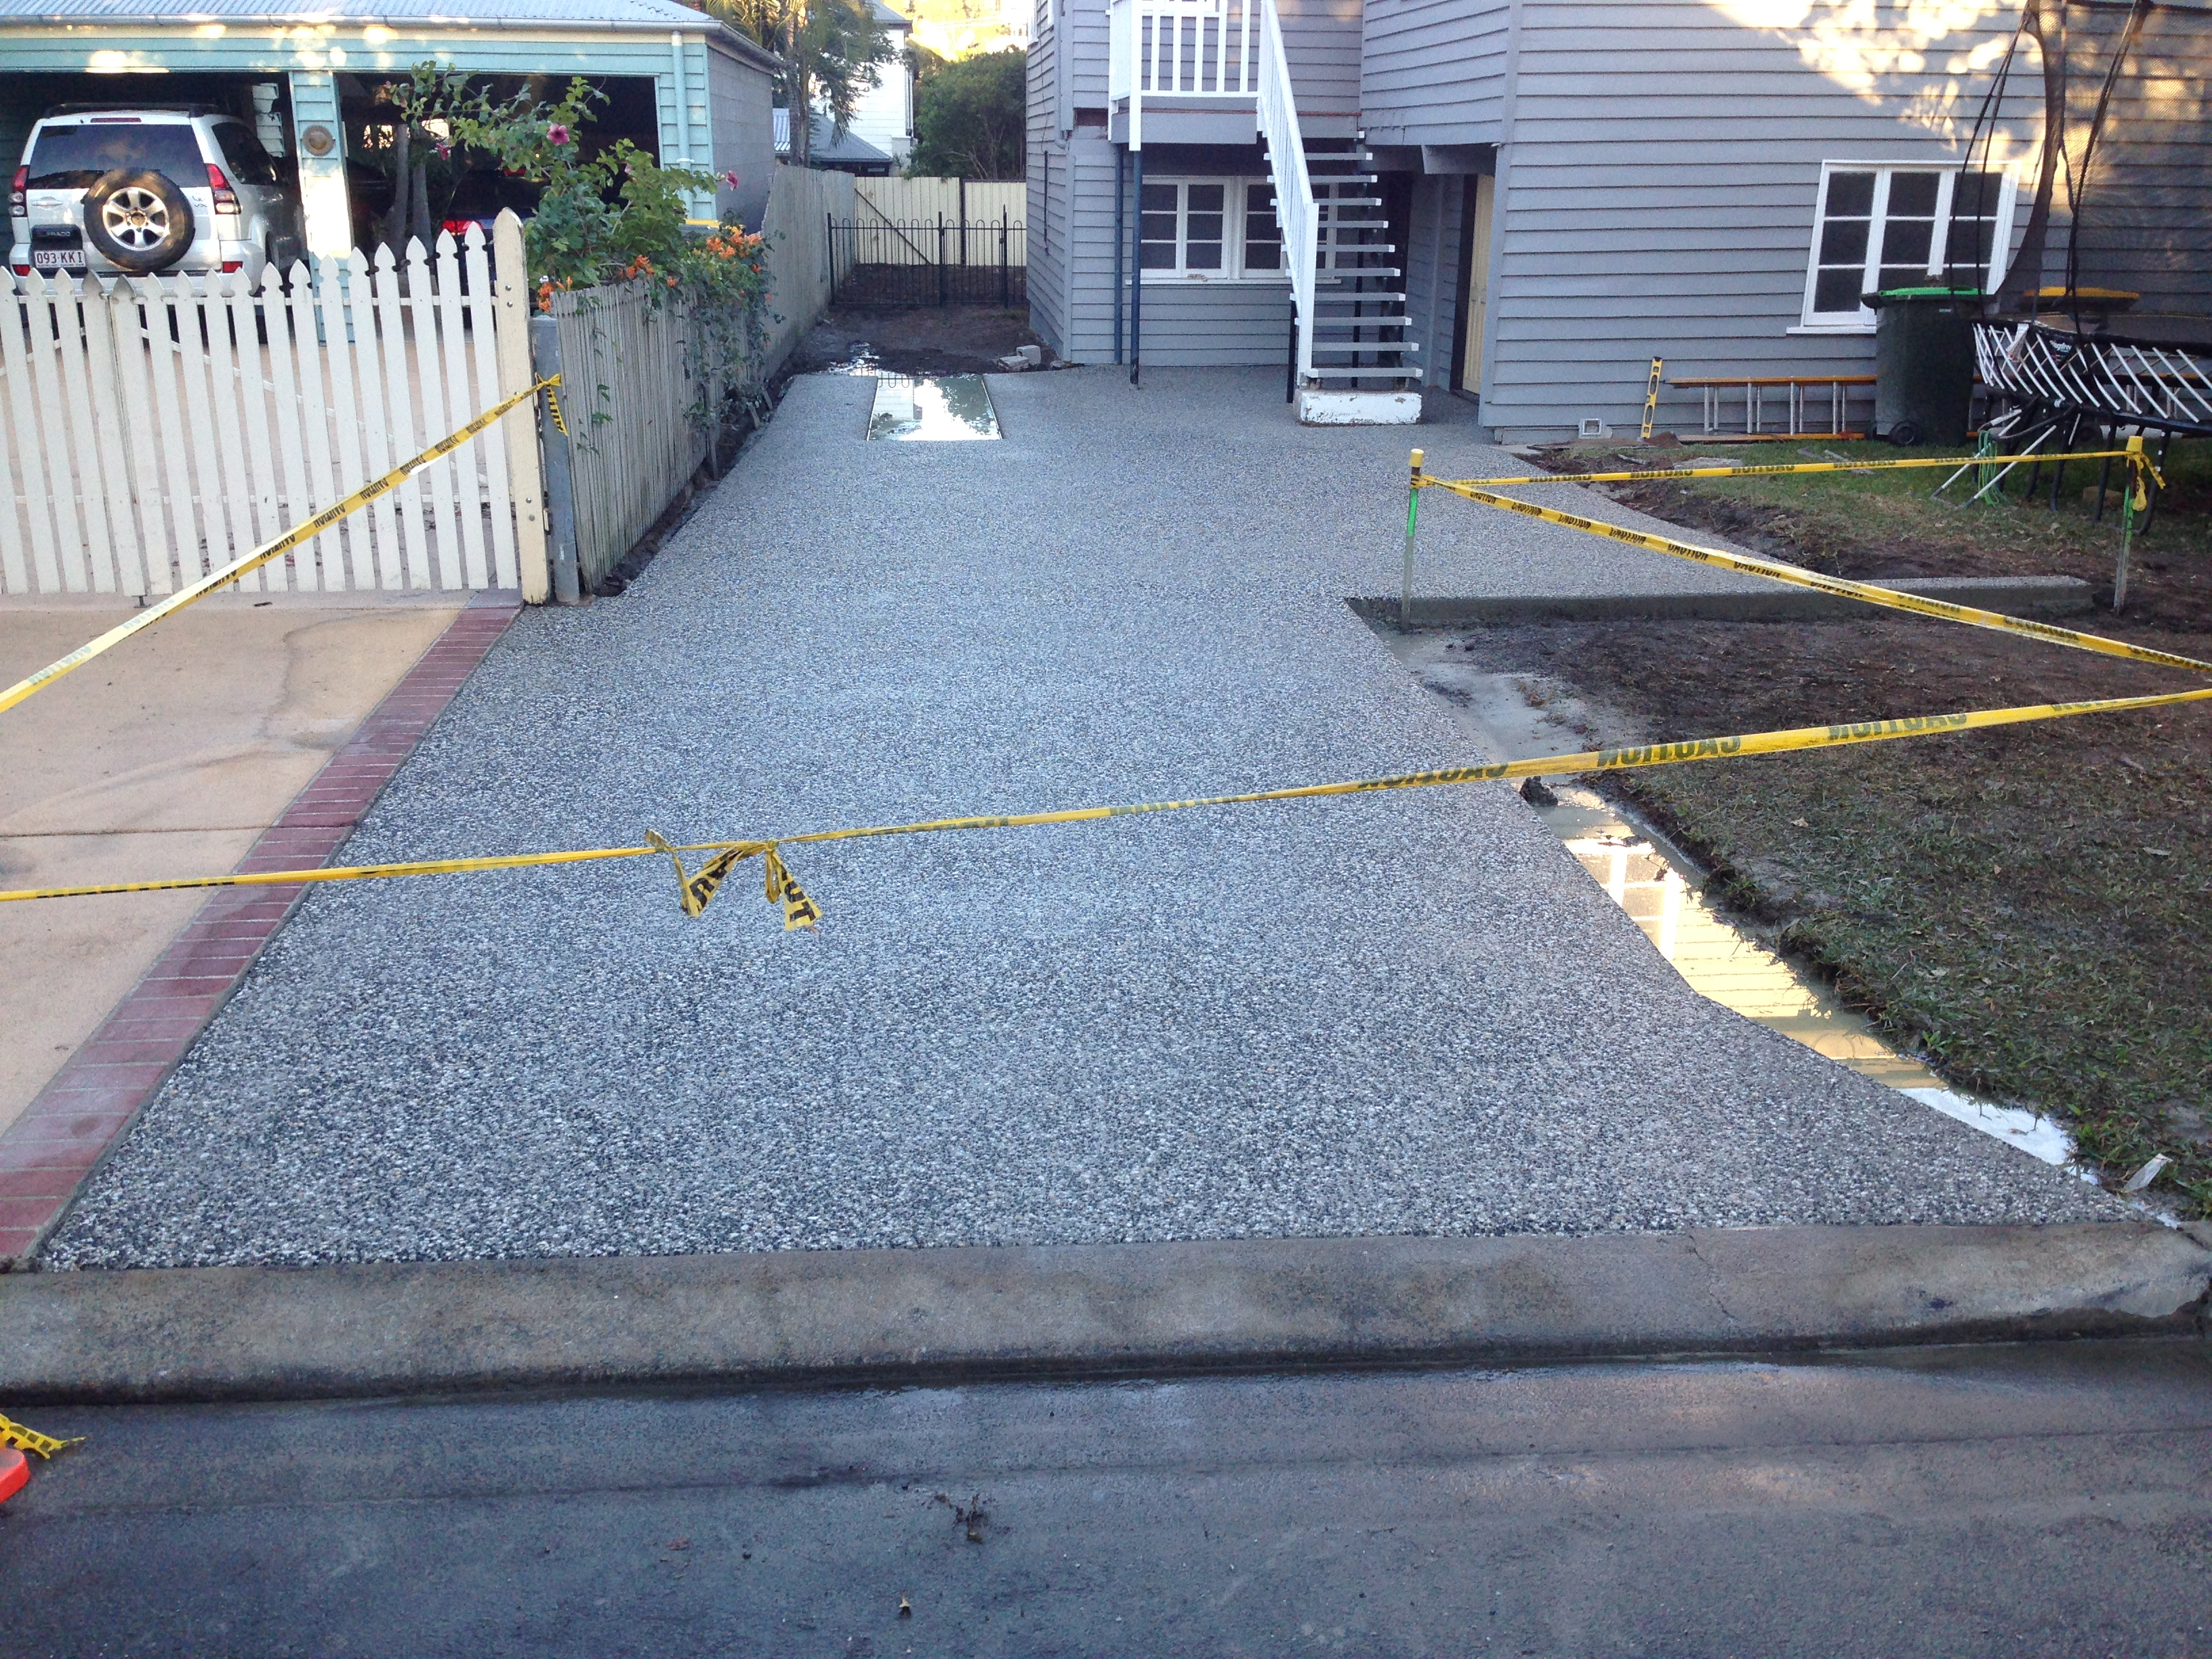 Exposed Driveway - Final Stage